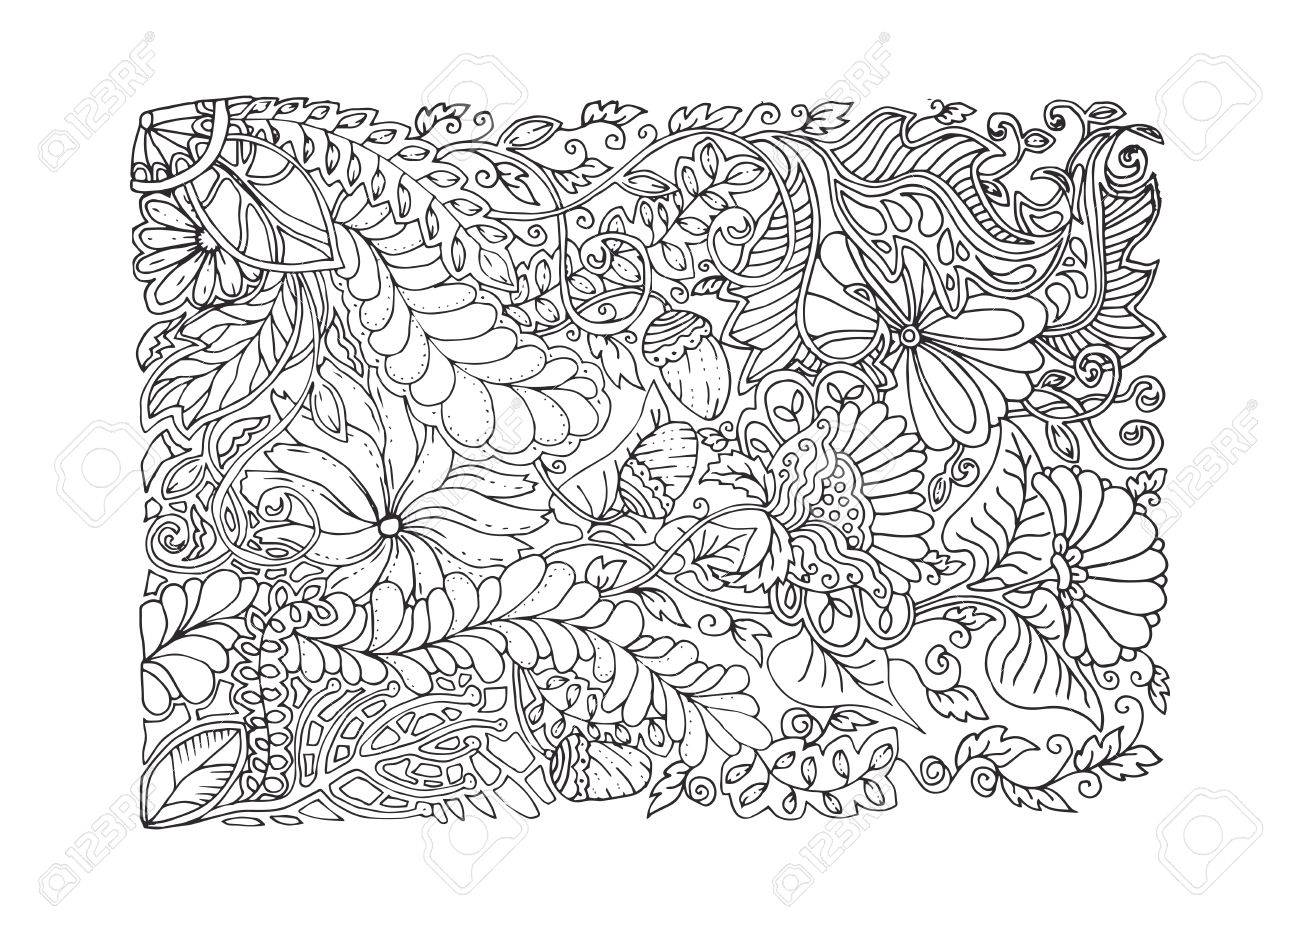 Dessin Apaisant Conception De Printemps Adultes Page De Coloriage Couleur Noir Et Blanc Antistress Modèle Apaisant Illustration Vectorielle Monochrome Dans L Art